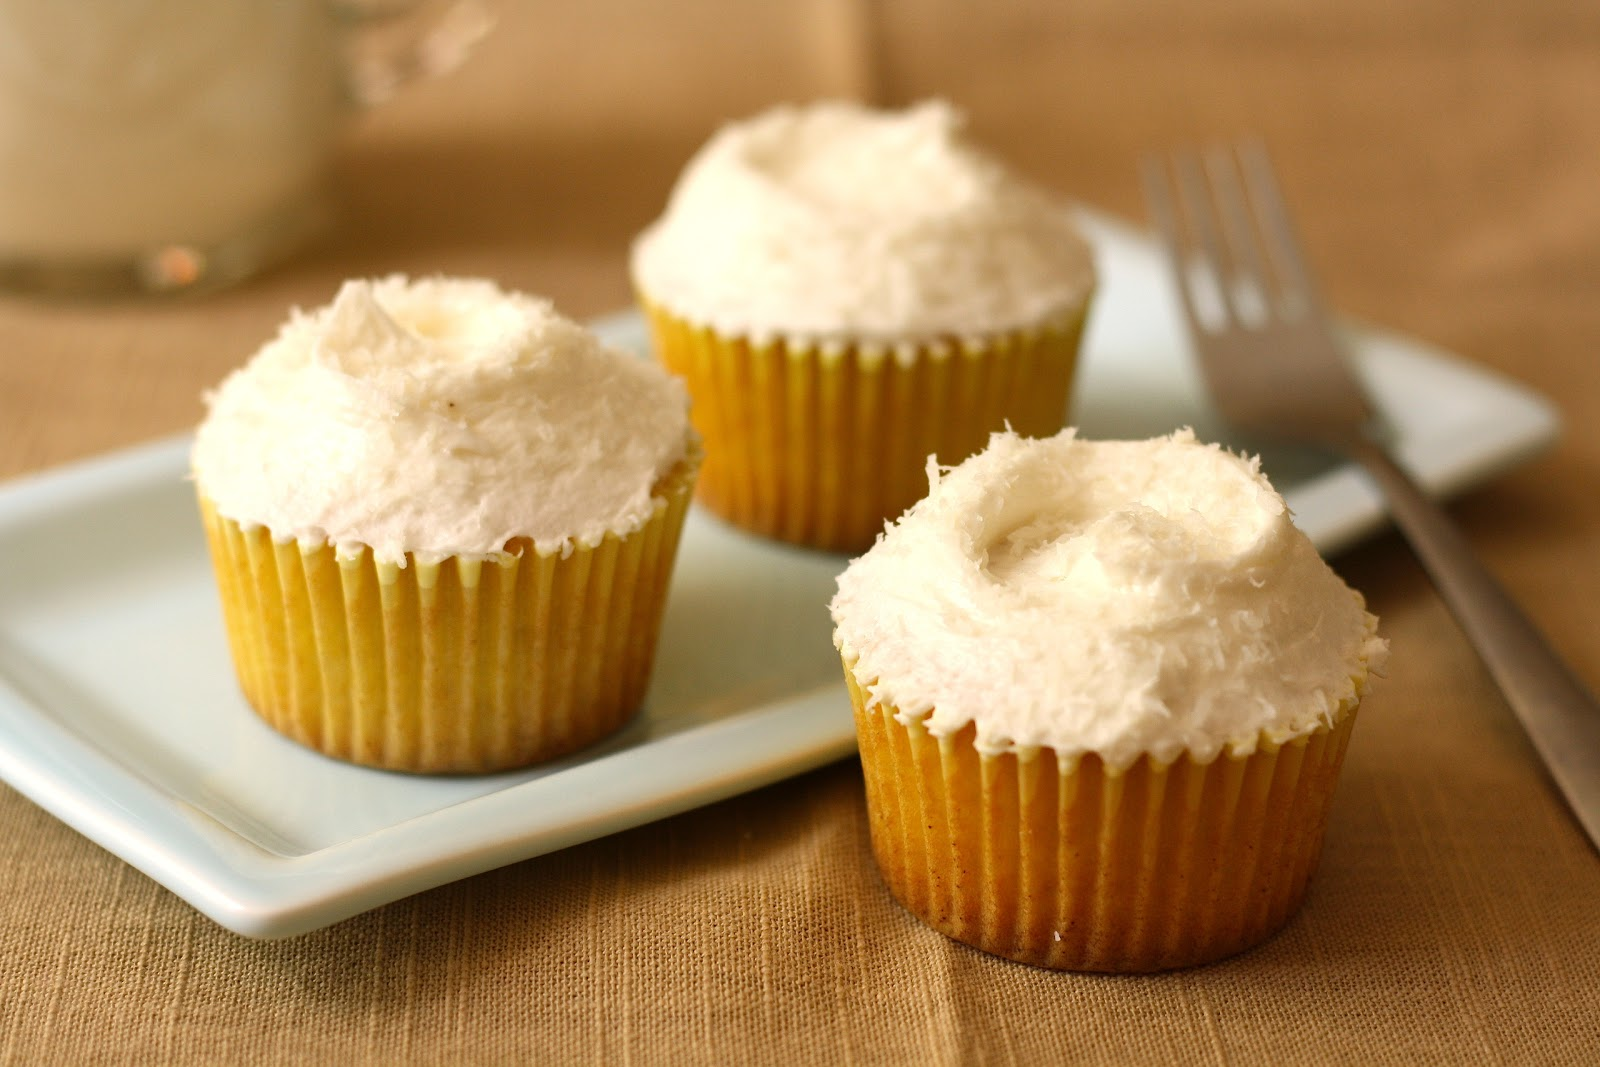 Hummingbird Bakery Coconut And Pineapple Cupcakes Recipe Adapted